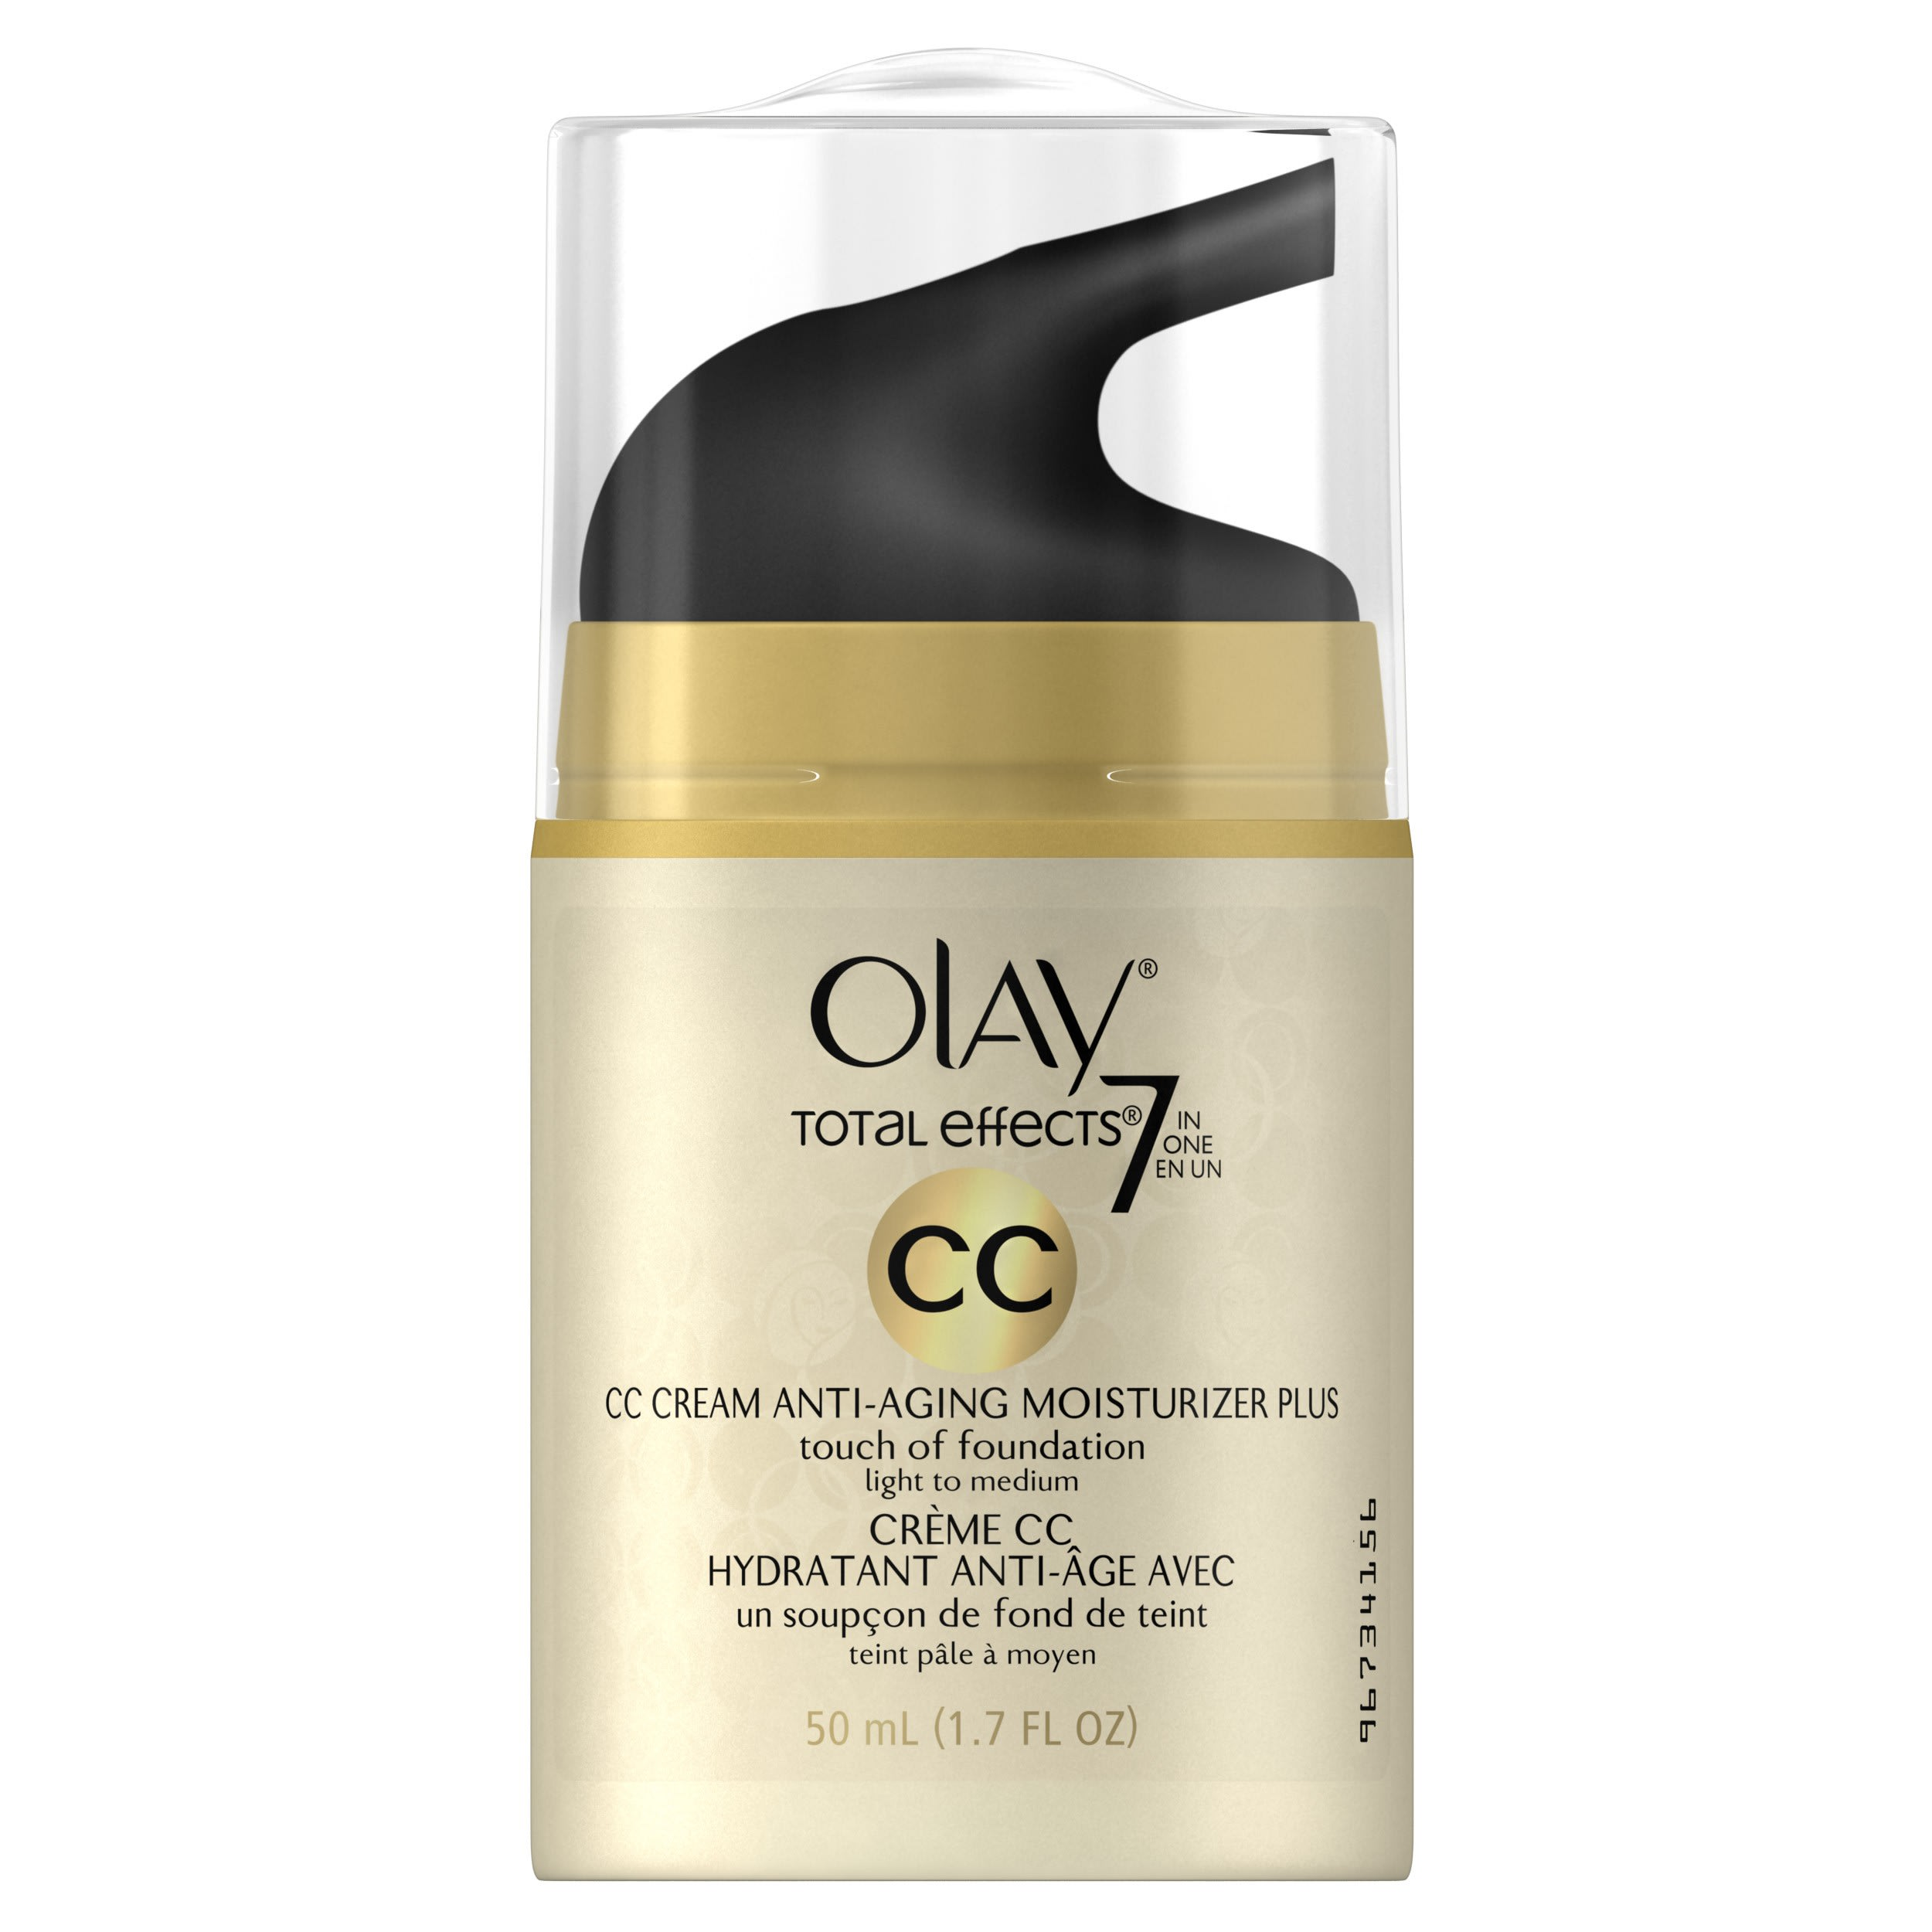 Olay CC Cream Total Effects Daily Moisturizer Touch of Foundation 3